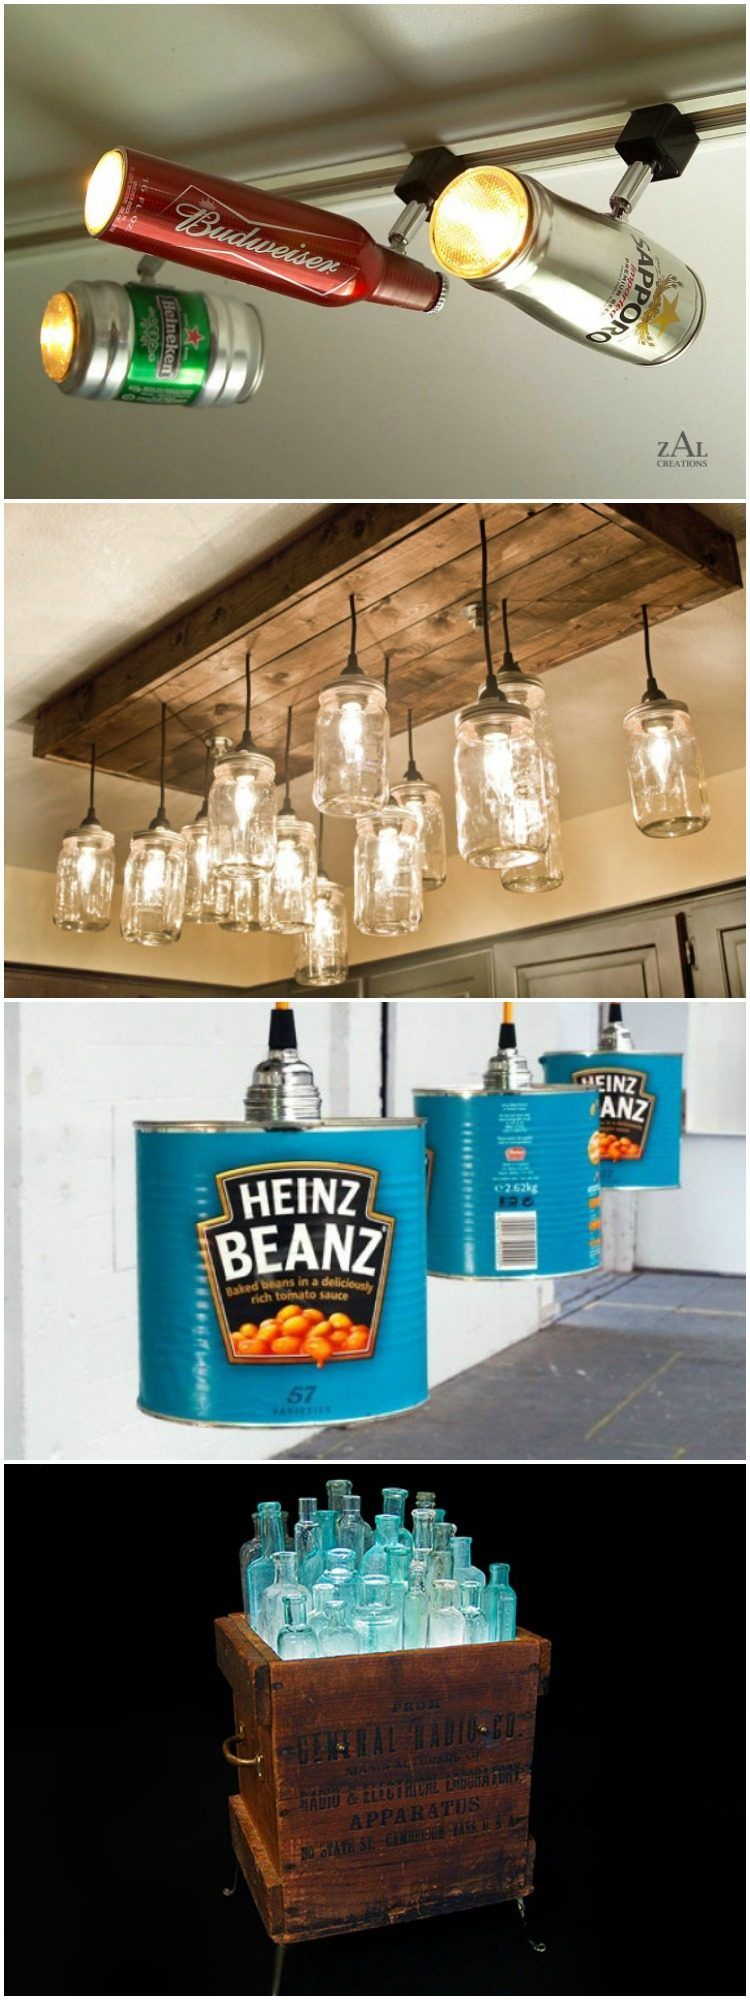 15 ideas to recycle your kitchen tool into Table Lamp! - #TableDeskLamps #Bottle…